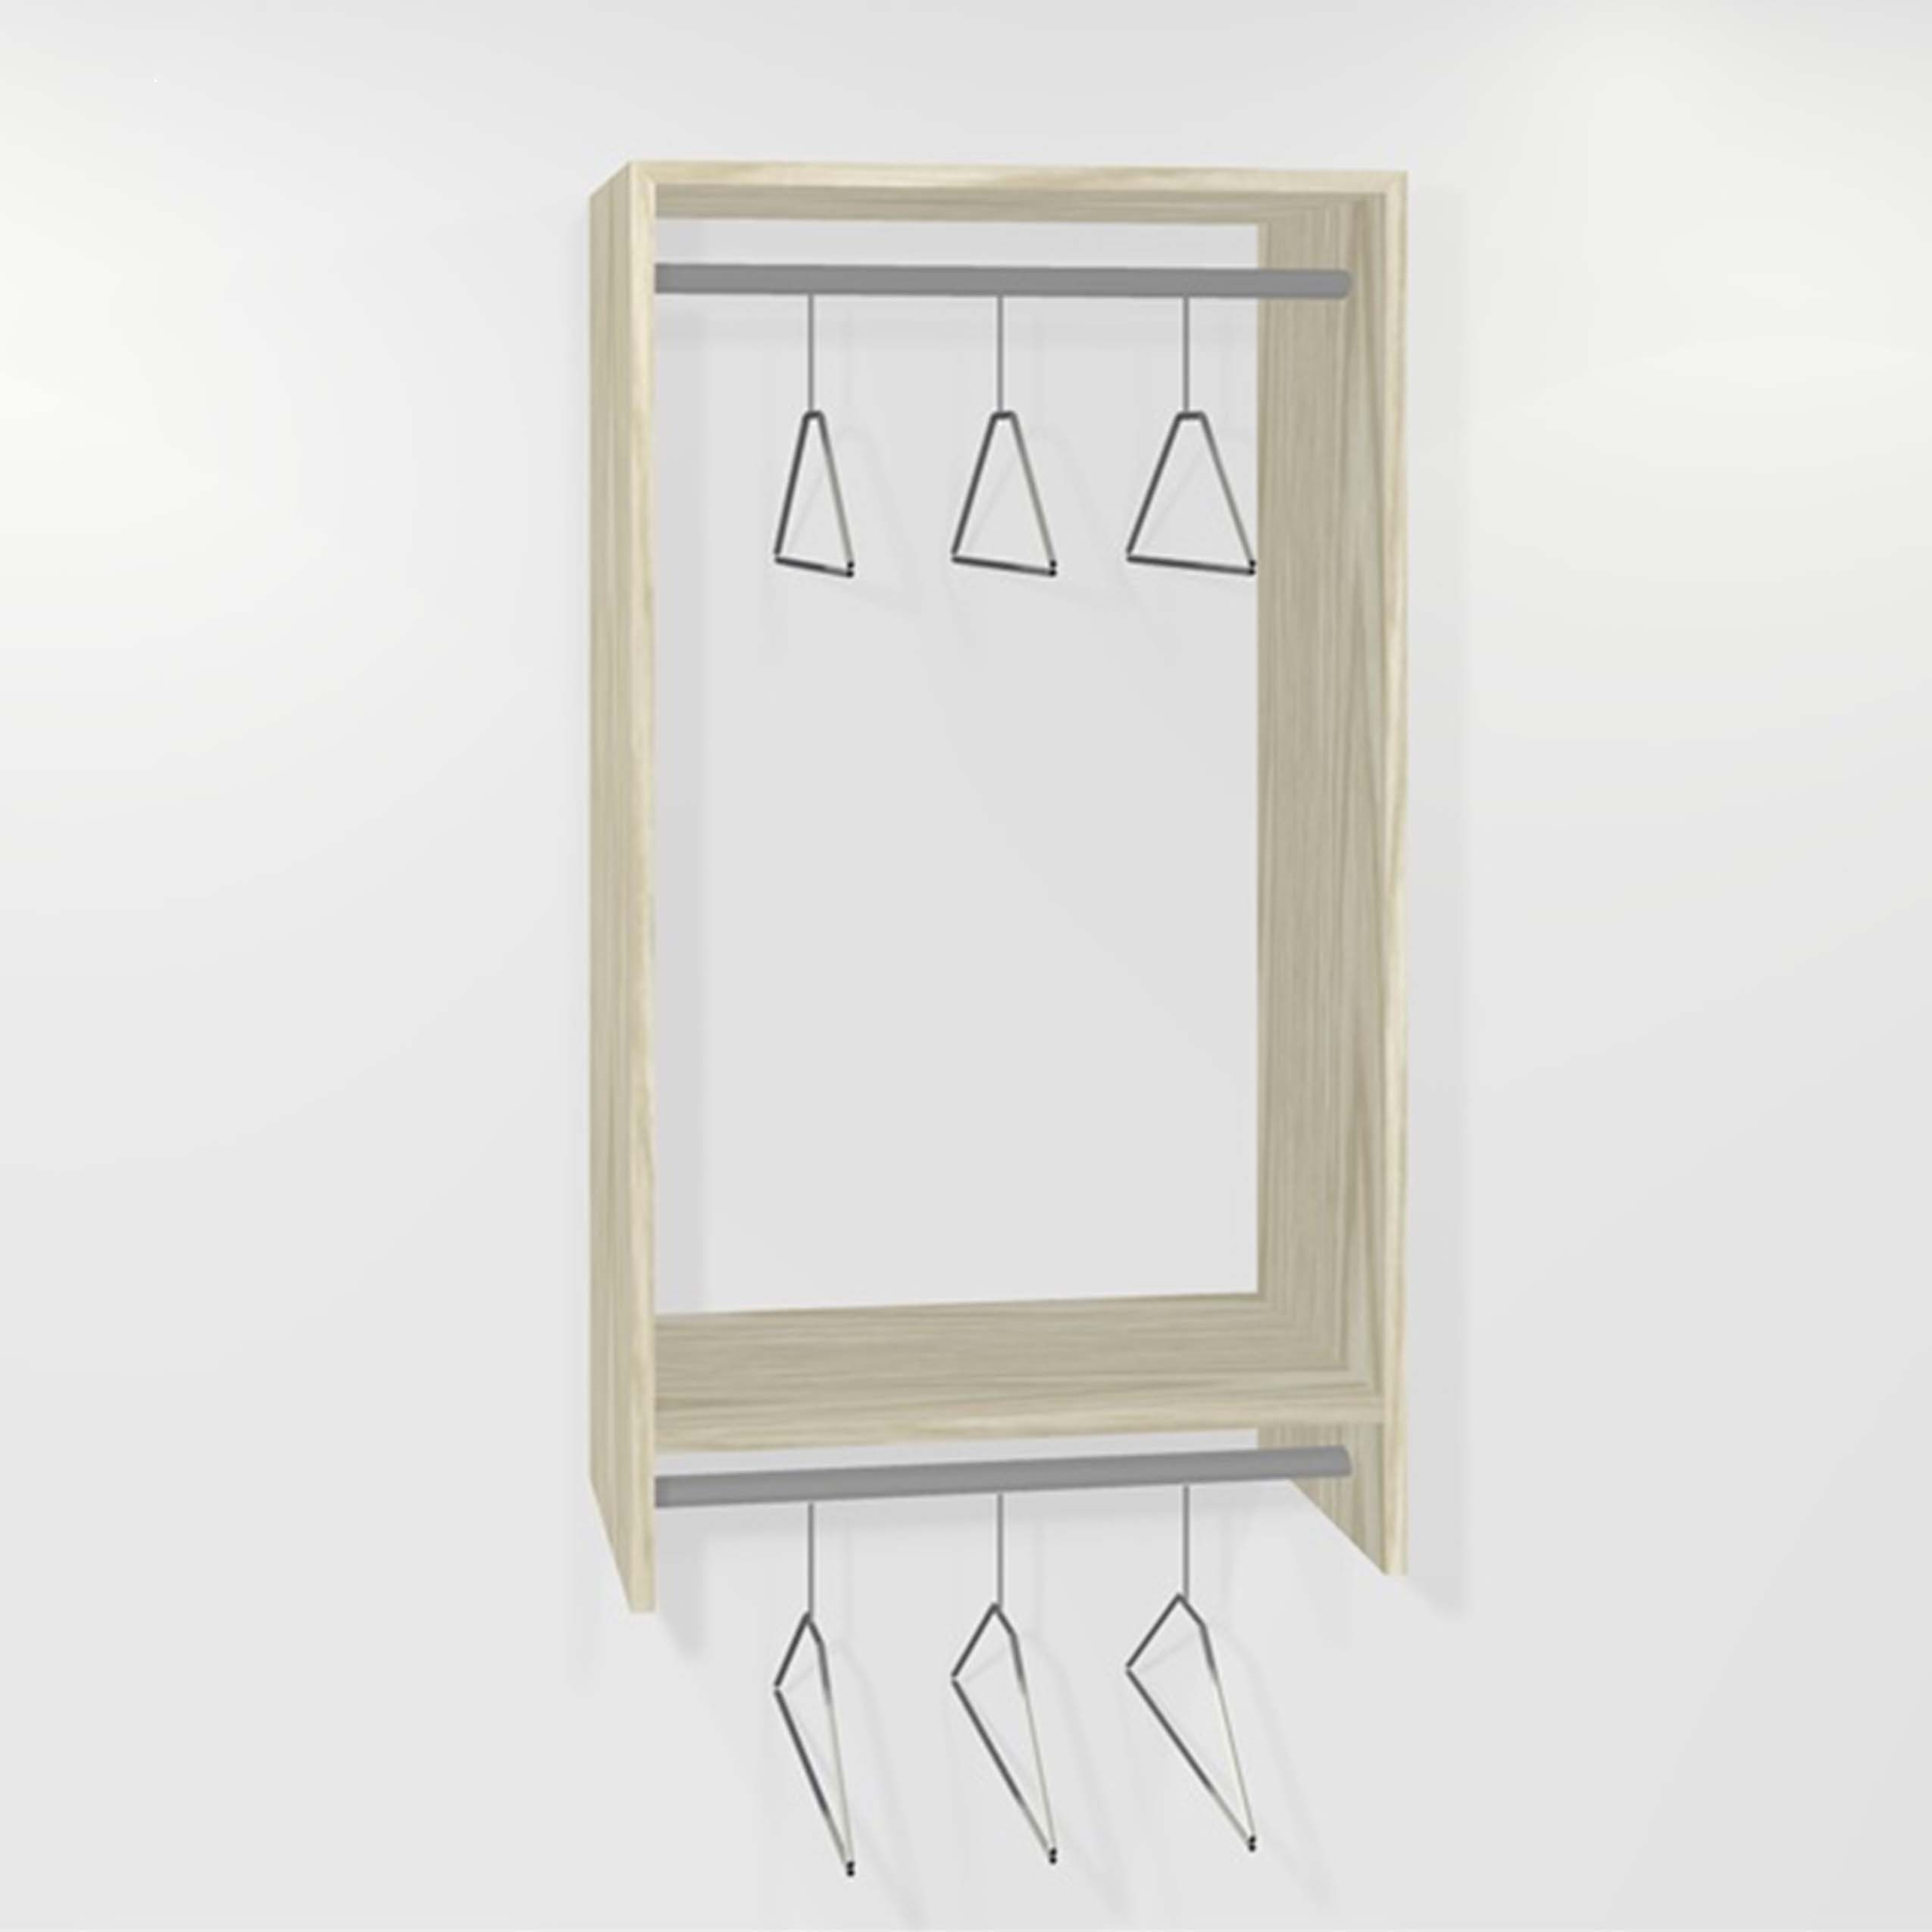 KCD Image - HD (Double Hanging)